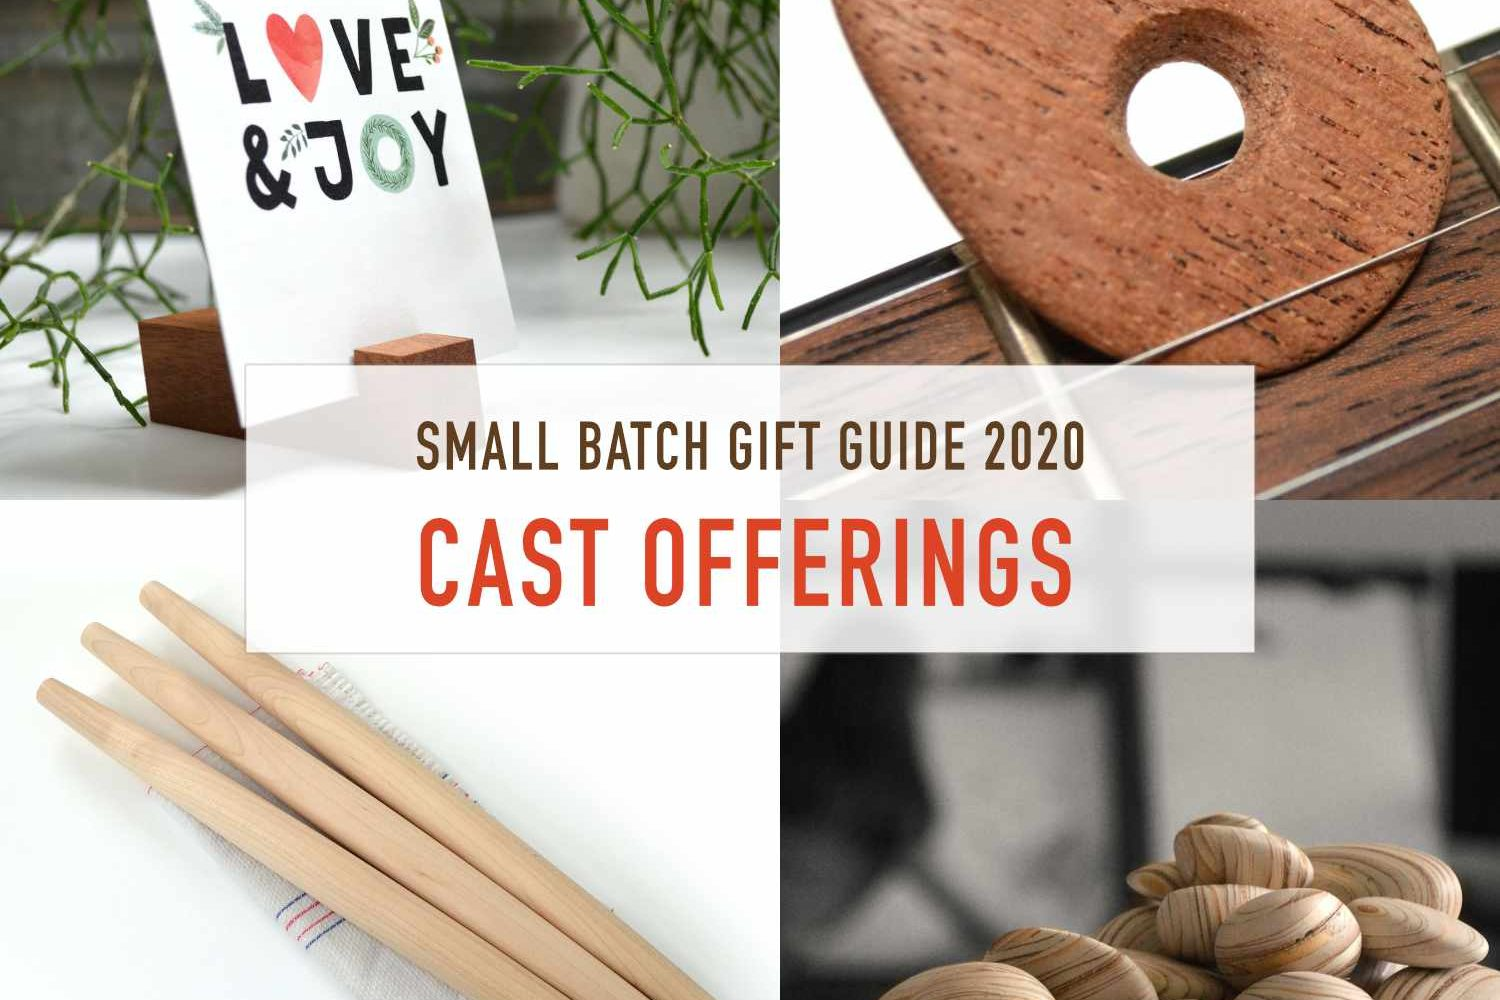 Cast Offerings Eco Wood Home Accessories & Gifts